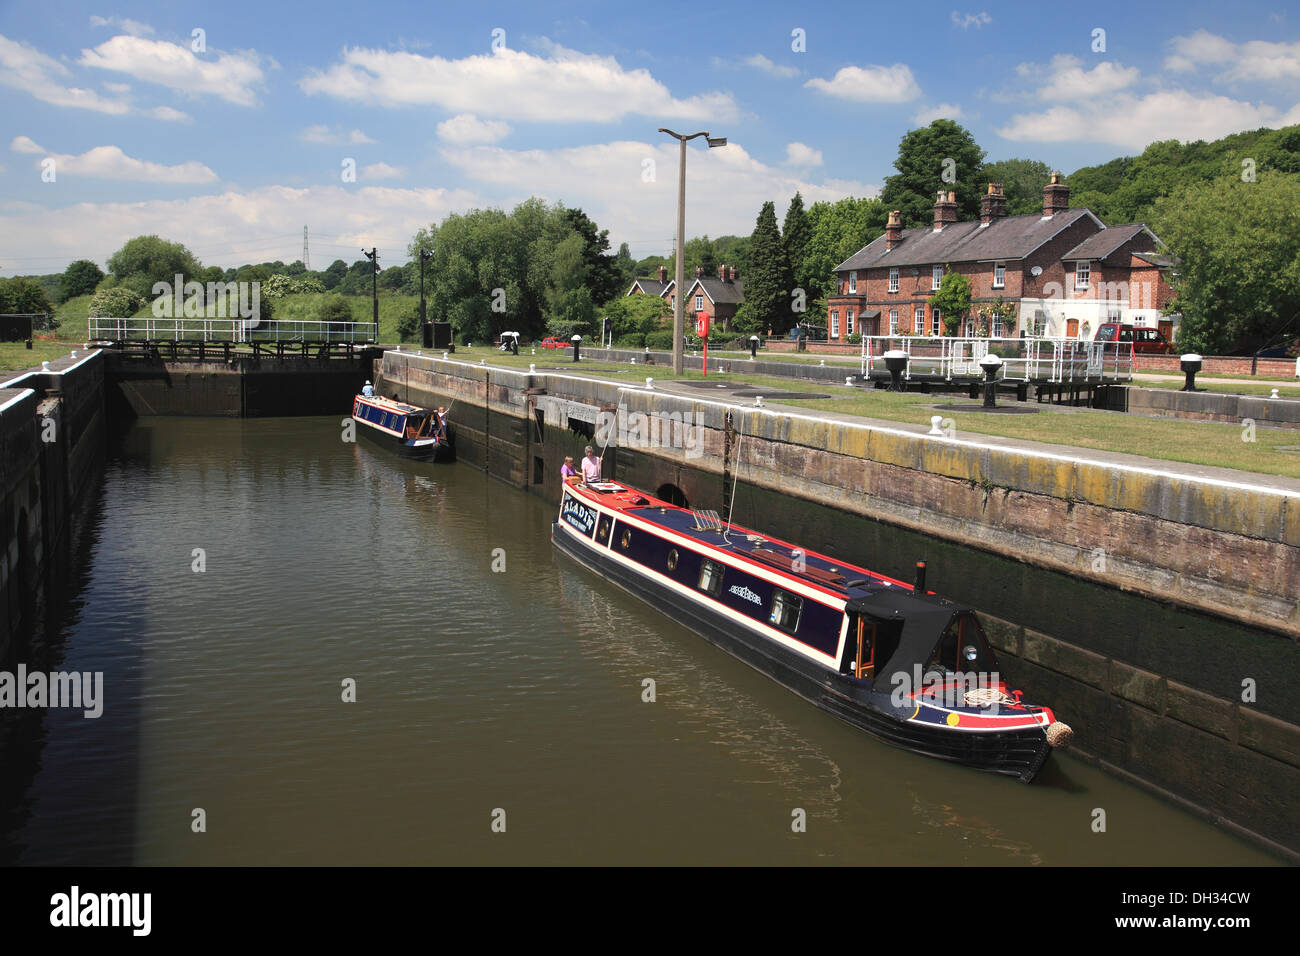 A narrowboat in the deep wide lock at Saltersford Locks No. 3 on the river Weaver in Barnton, Cheshire - Stock Image